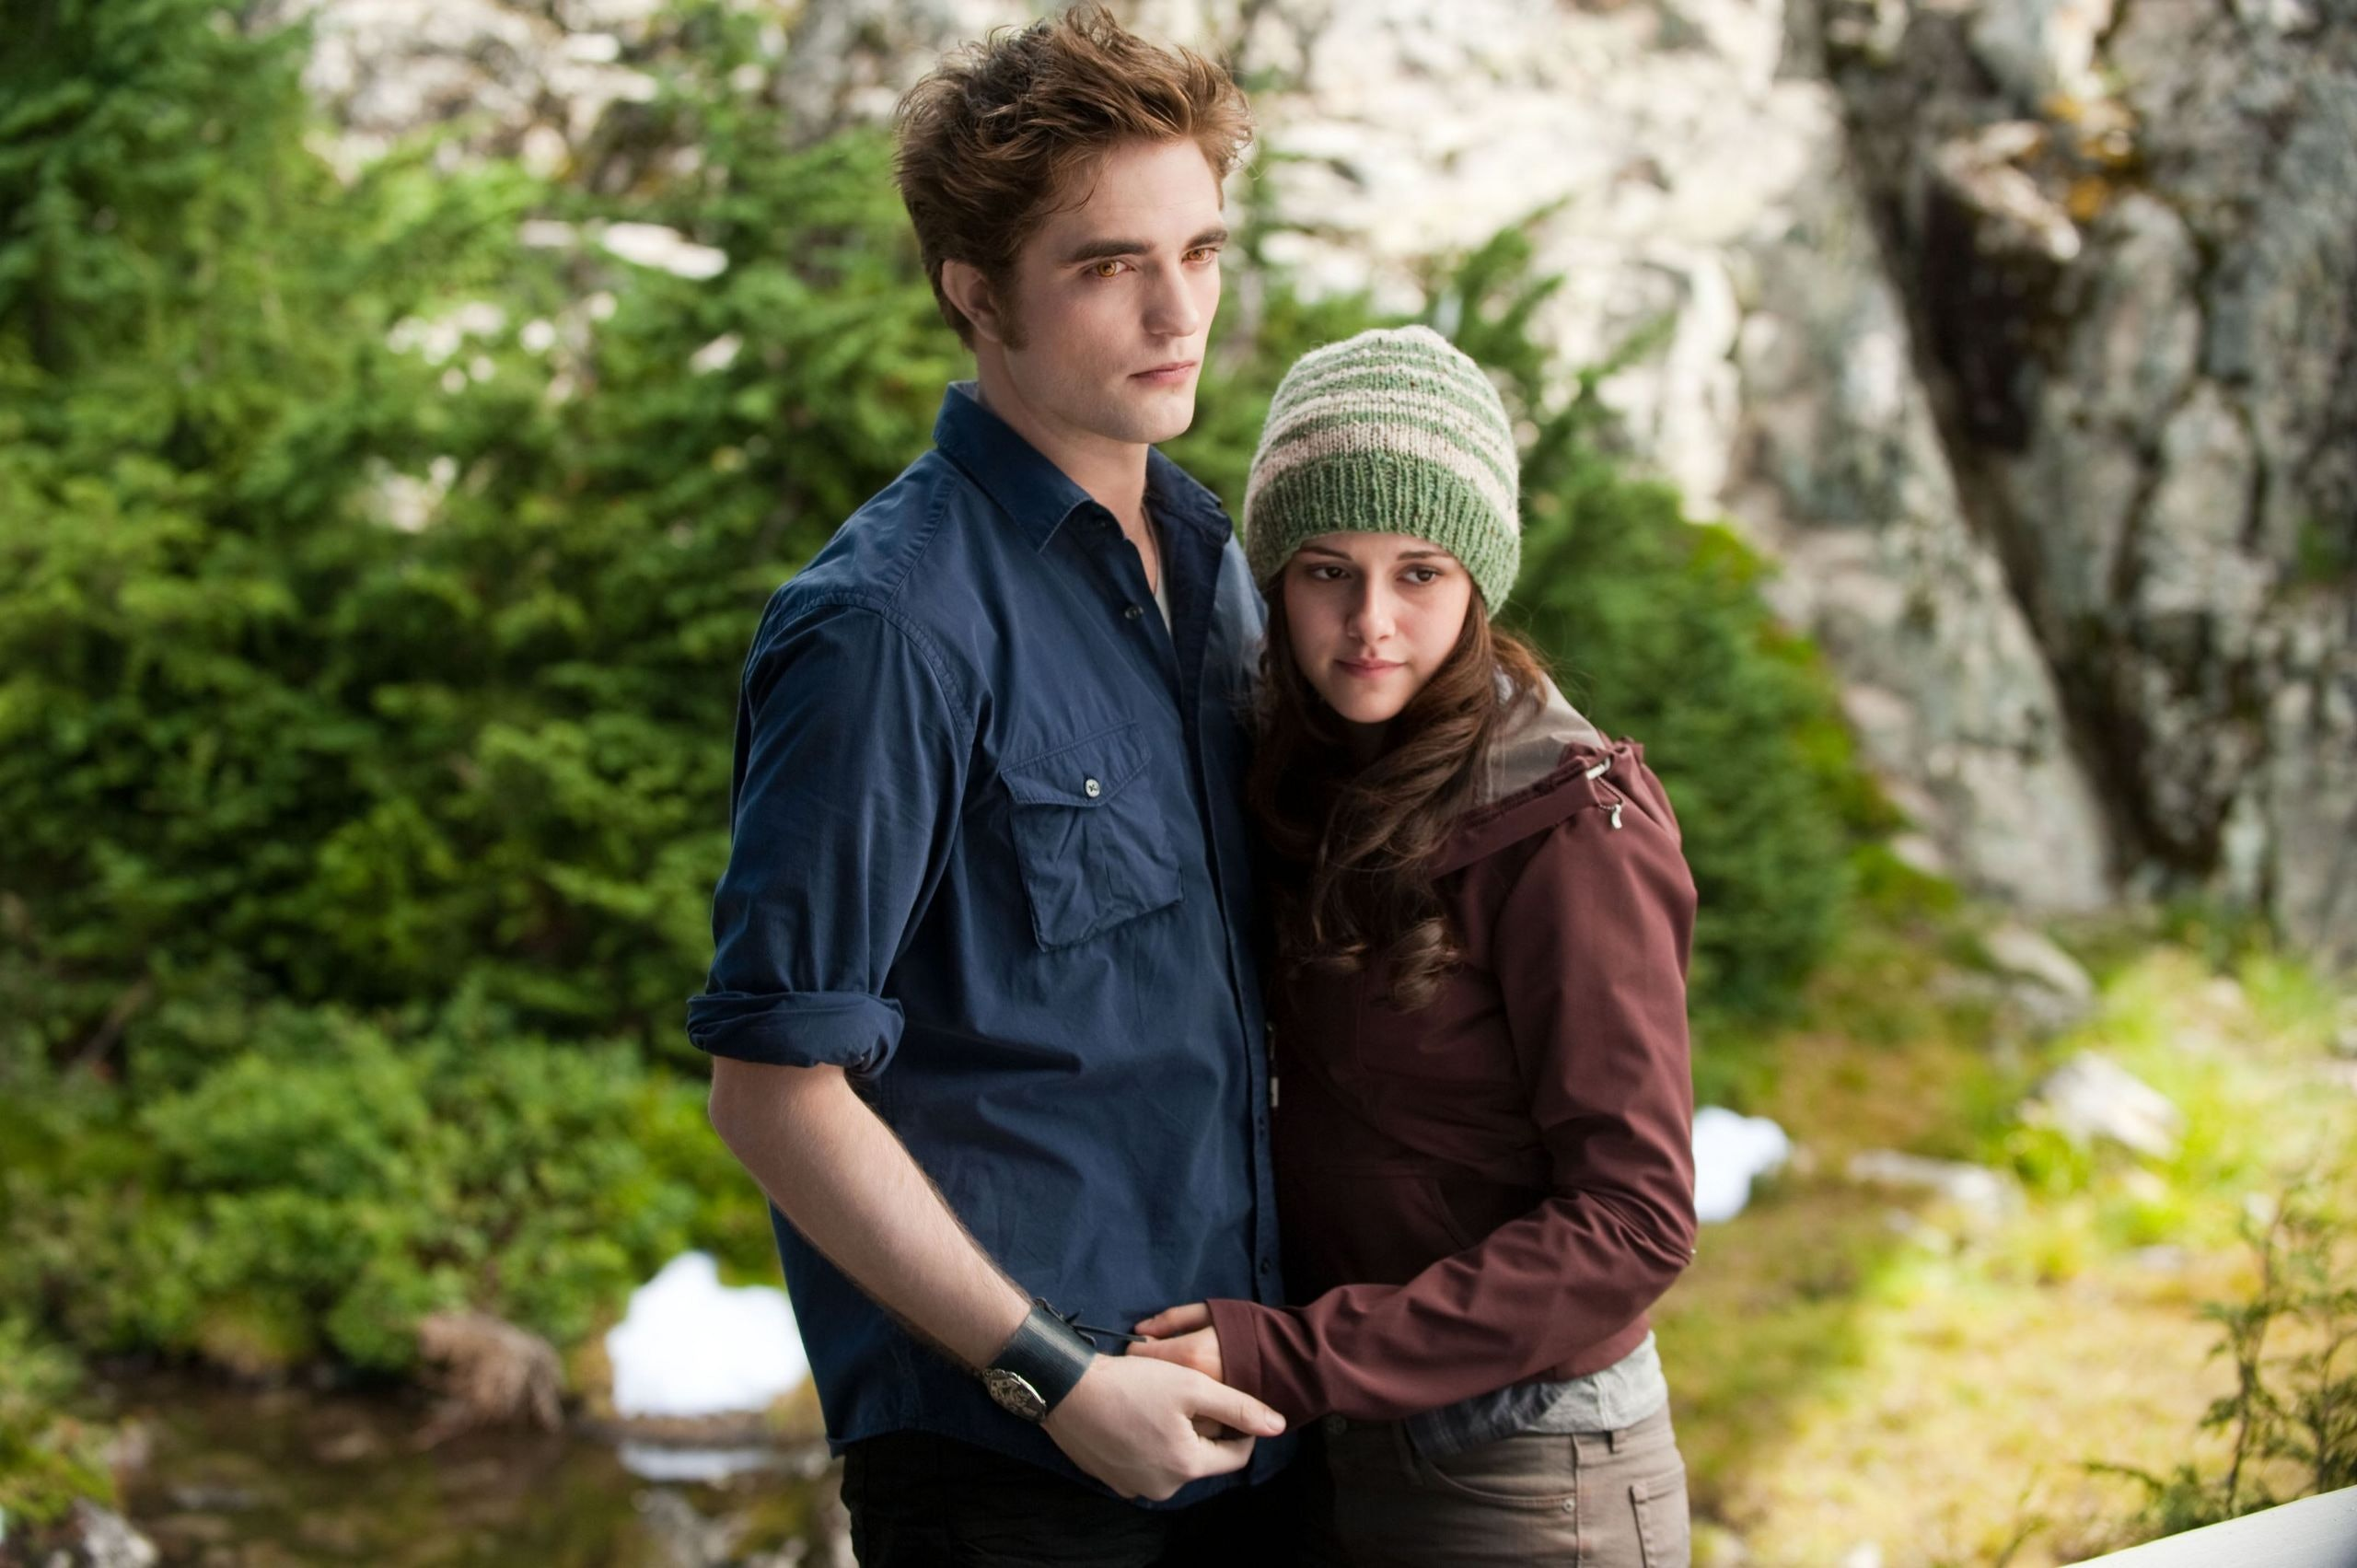 Do bella and edward dating in real life